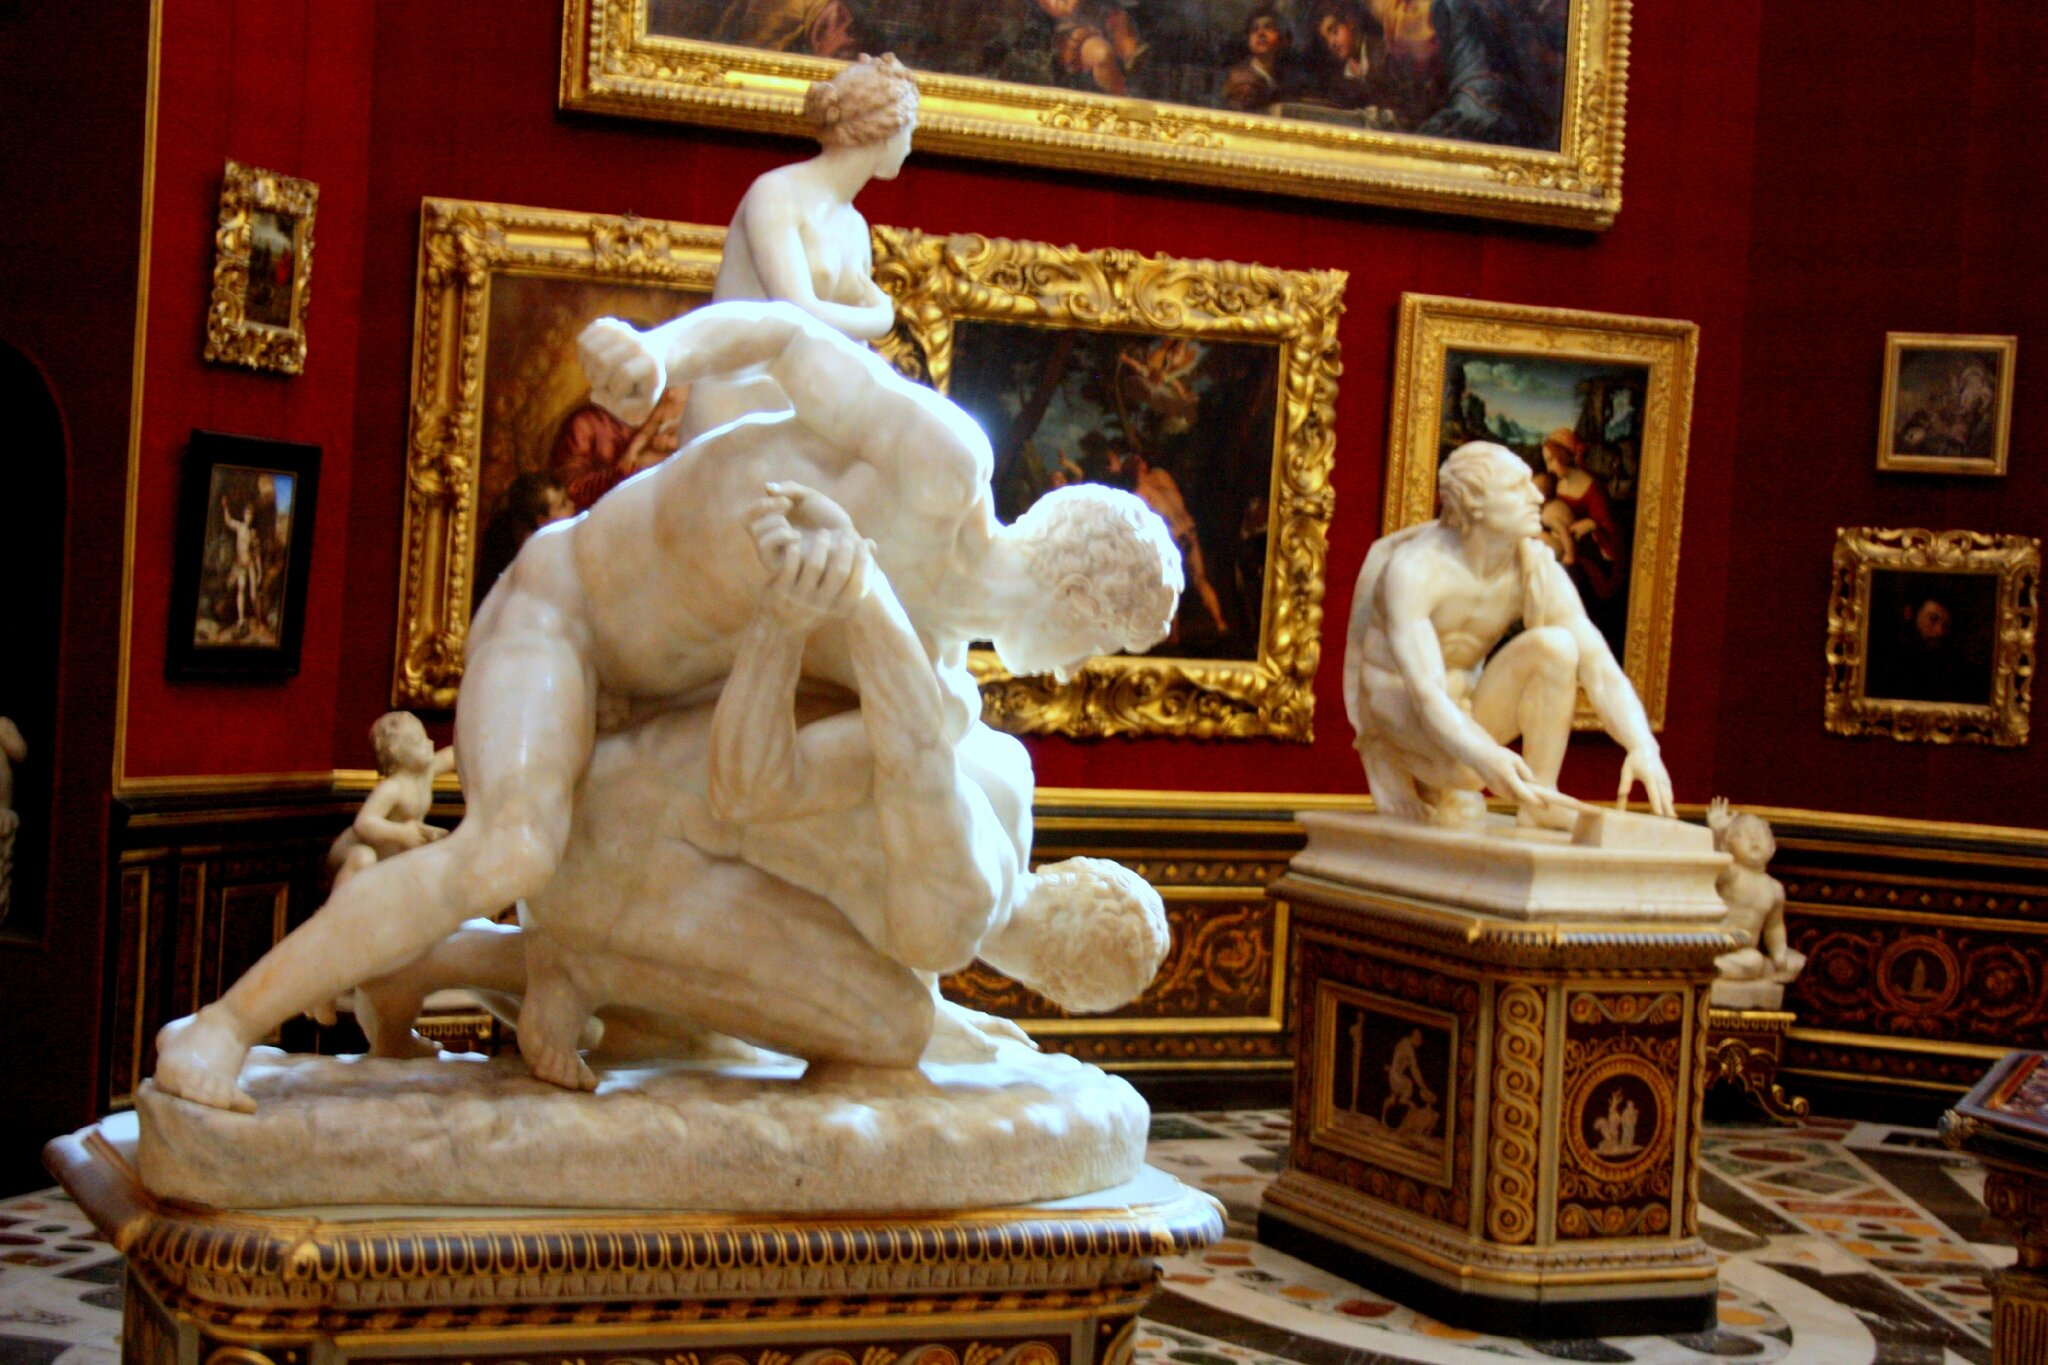 A la galerie des offices florence mrs sew and so - Musee des offices florence visite virtuelle ...